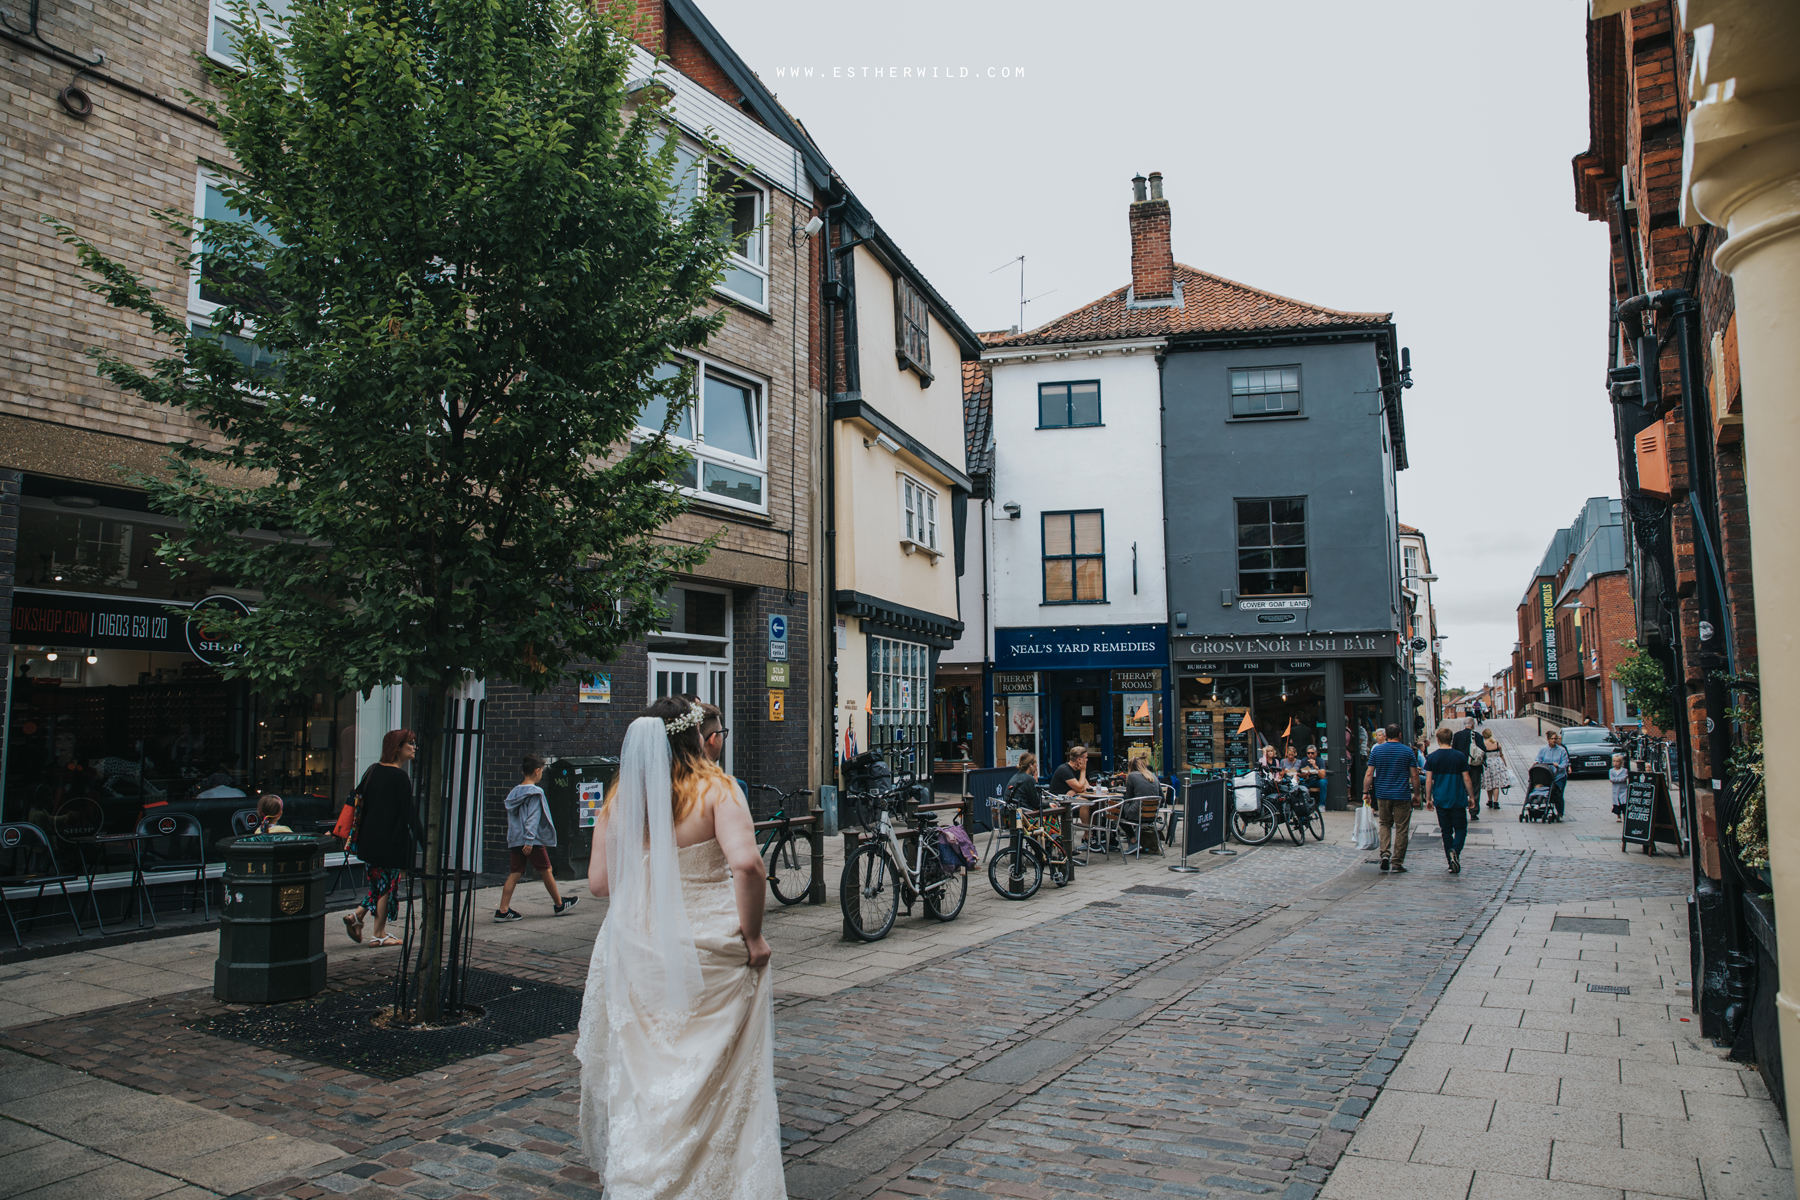 Norwich_Castle_Arcade_Grosvenor_Chip_Birdcage_Cathedral_Cloisters_Refectory_Wedding_Photography_Esther_Wild_Photographer_Norfolk_Kings_Lynn_3R8A1366.jpg